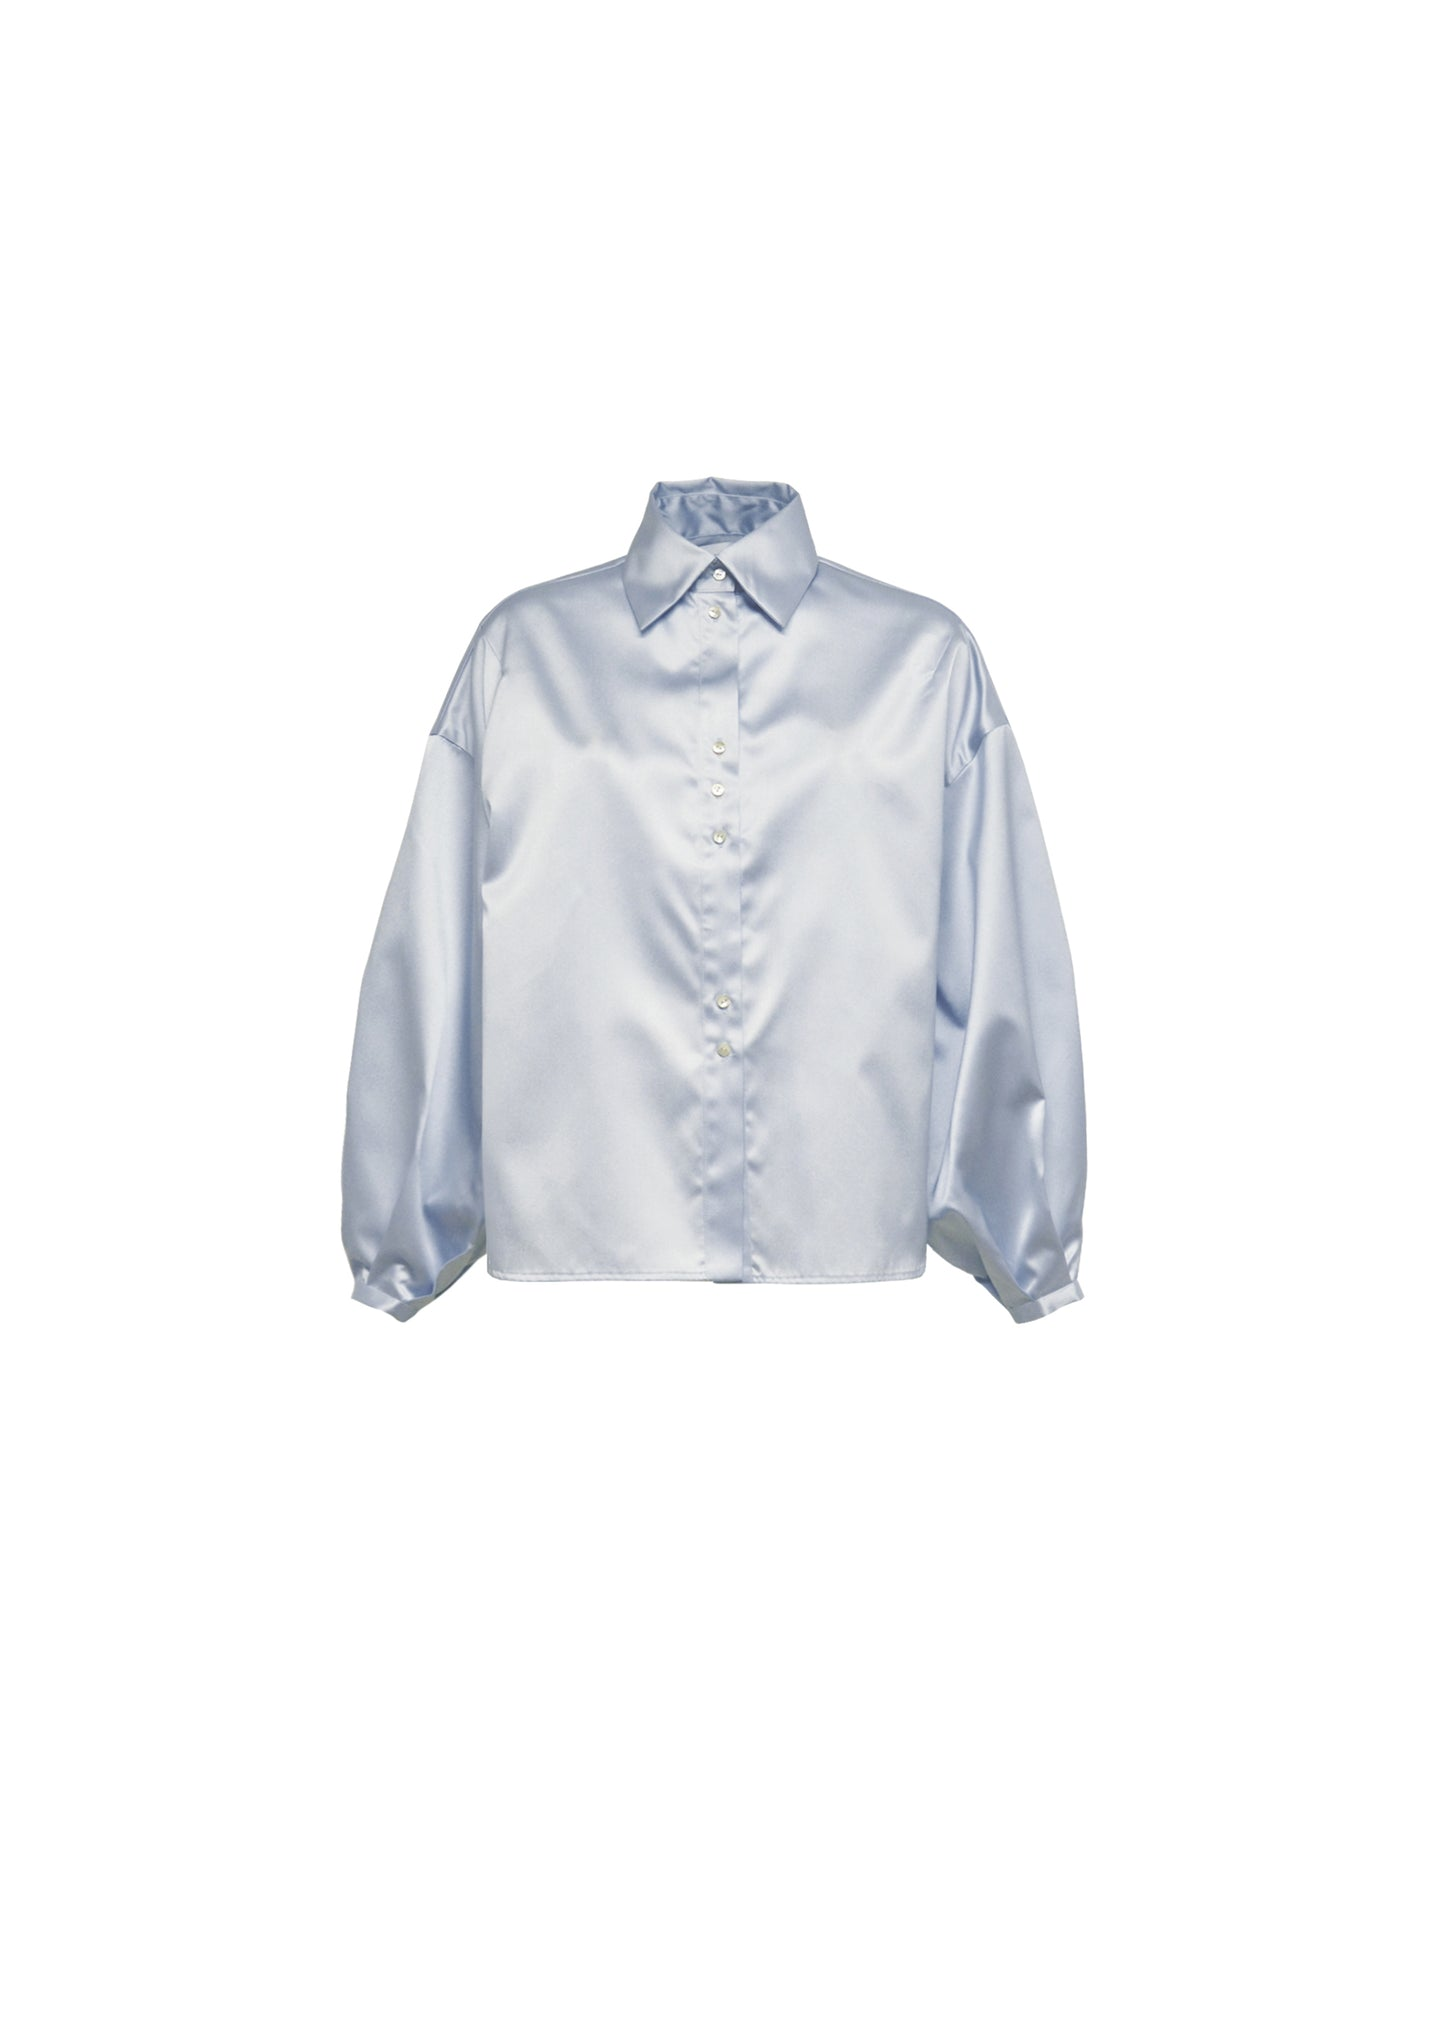 Light blue soft shoulders shirt